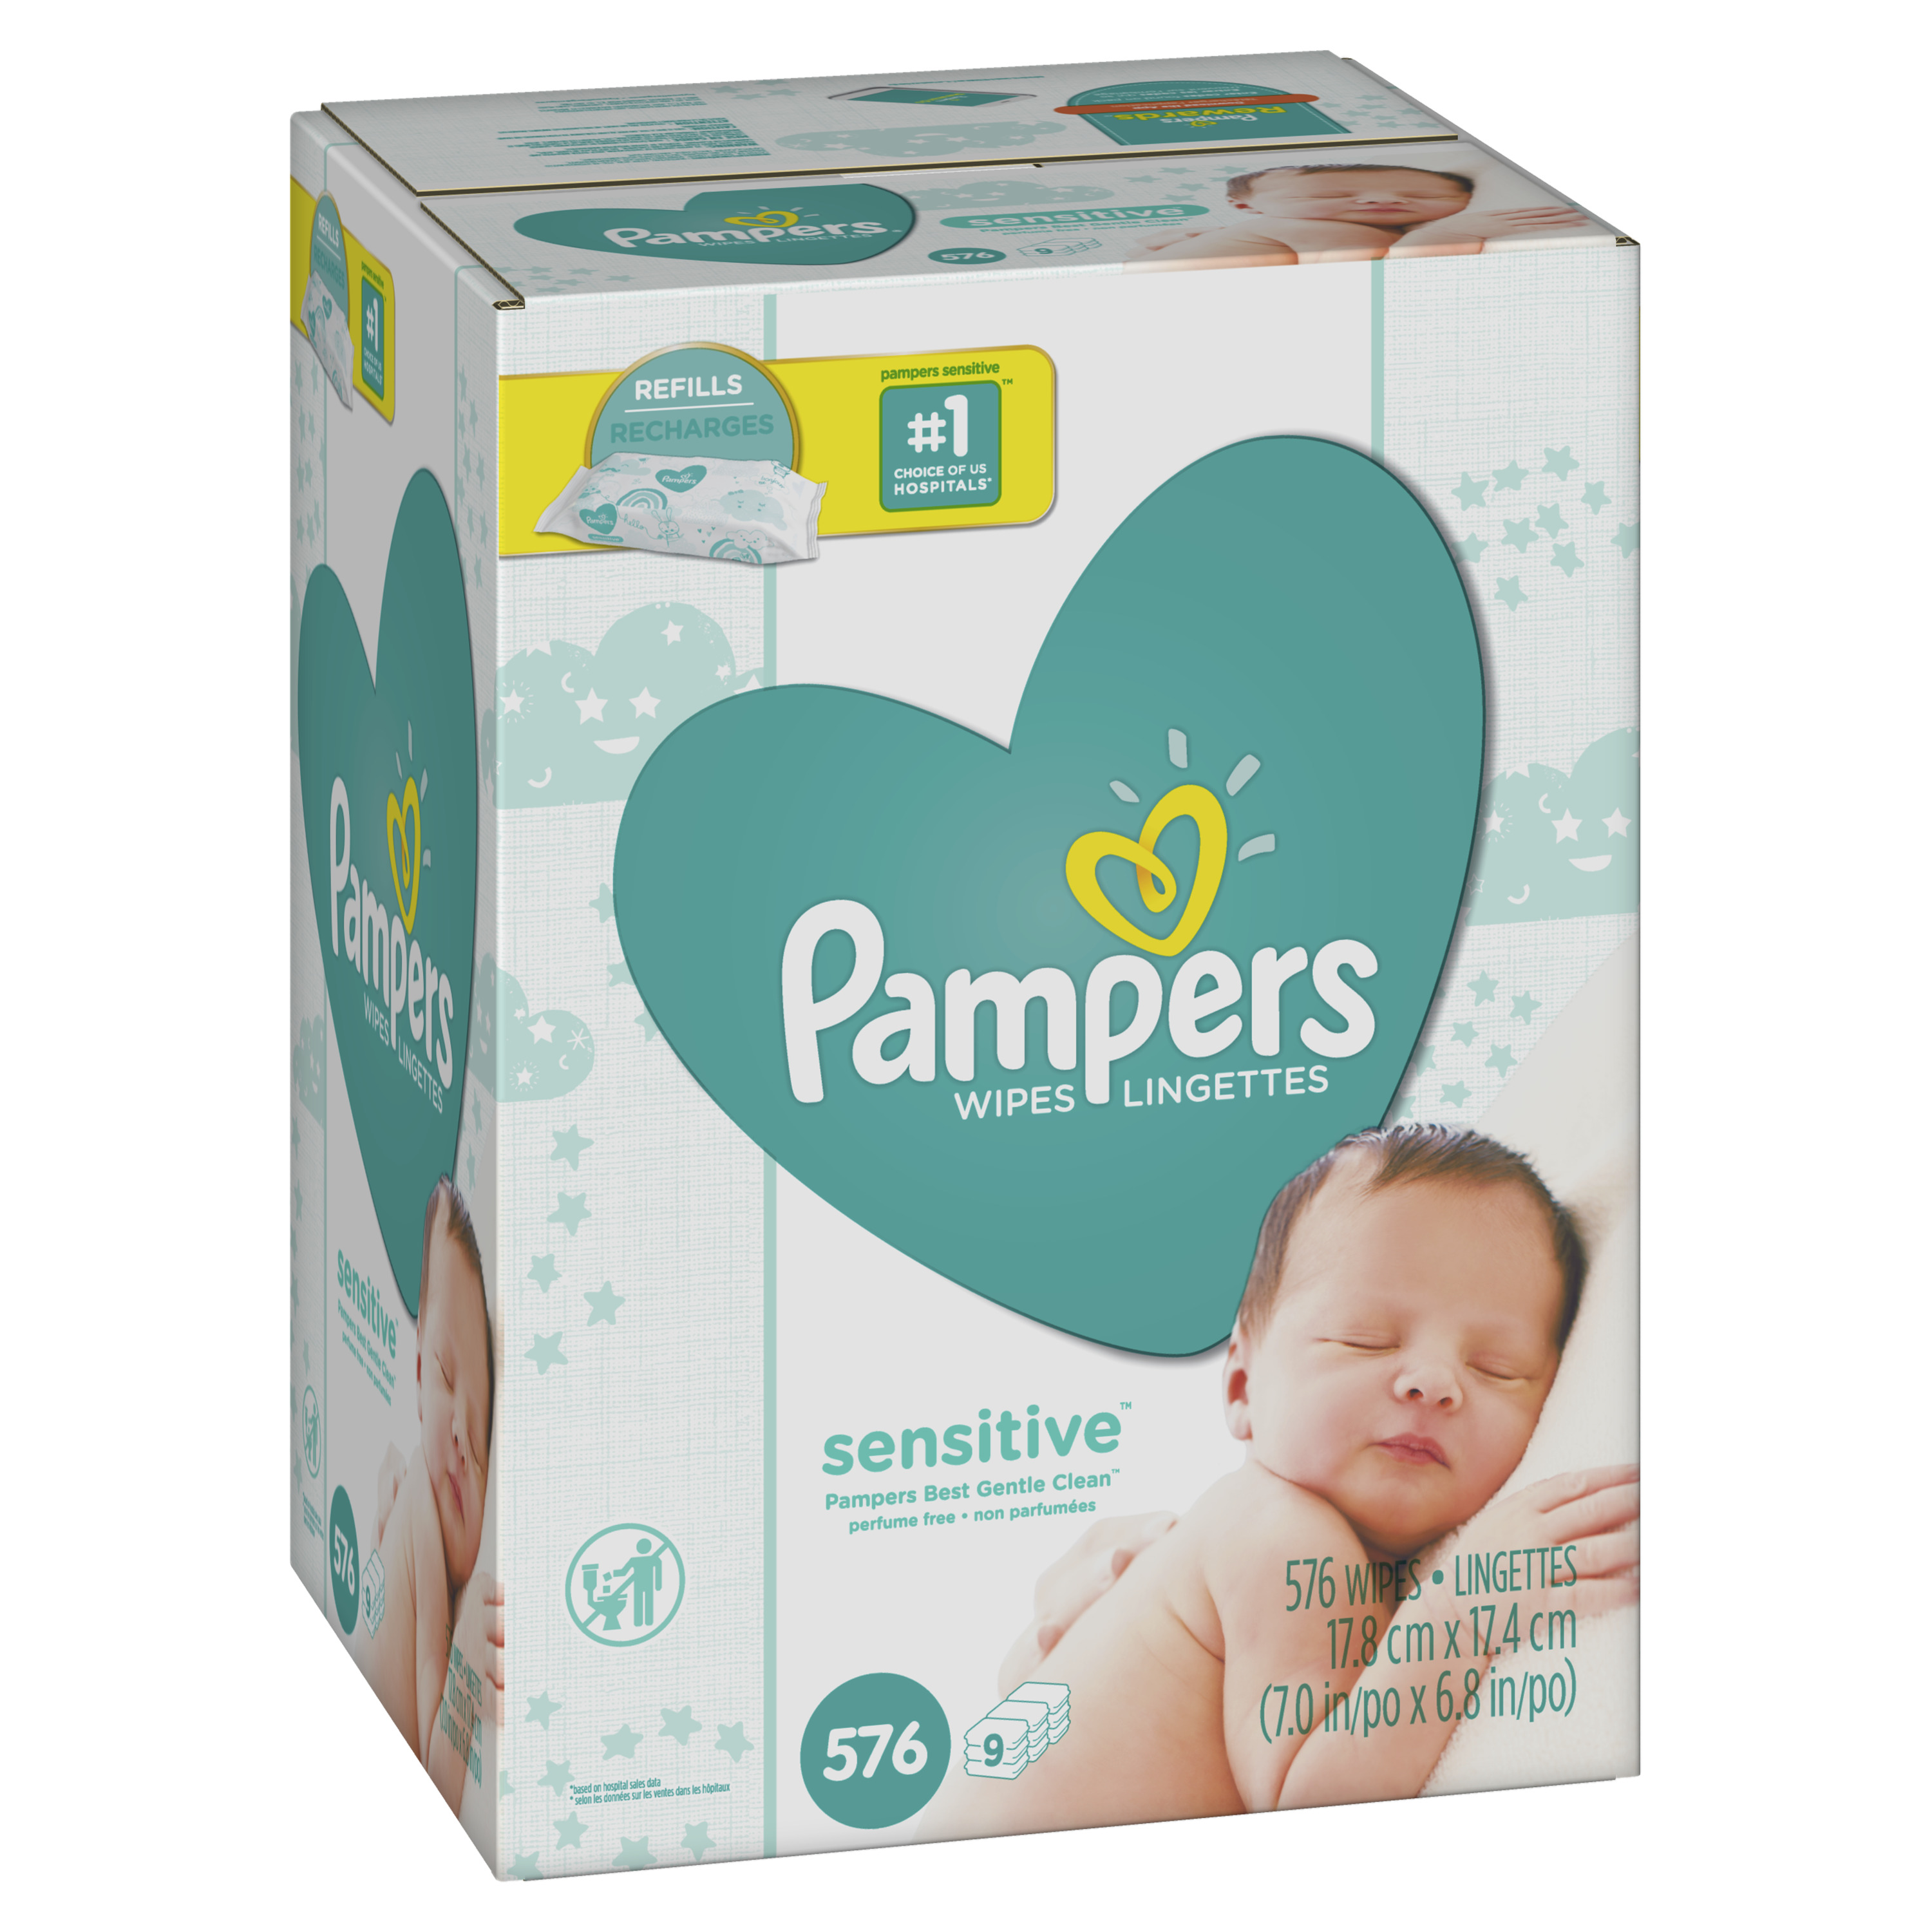 Pampers Baby Wipes Sensitive 9X Refill (Tub Not Included) 576 Count